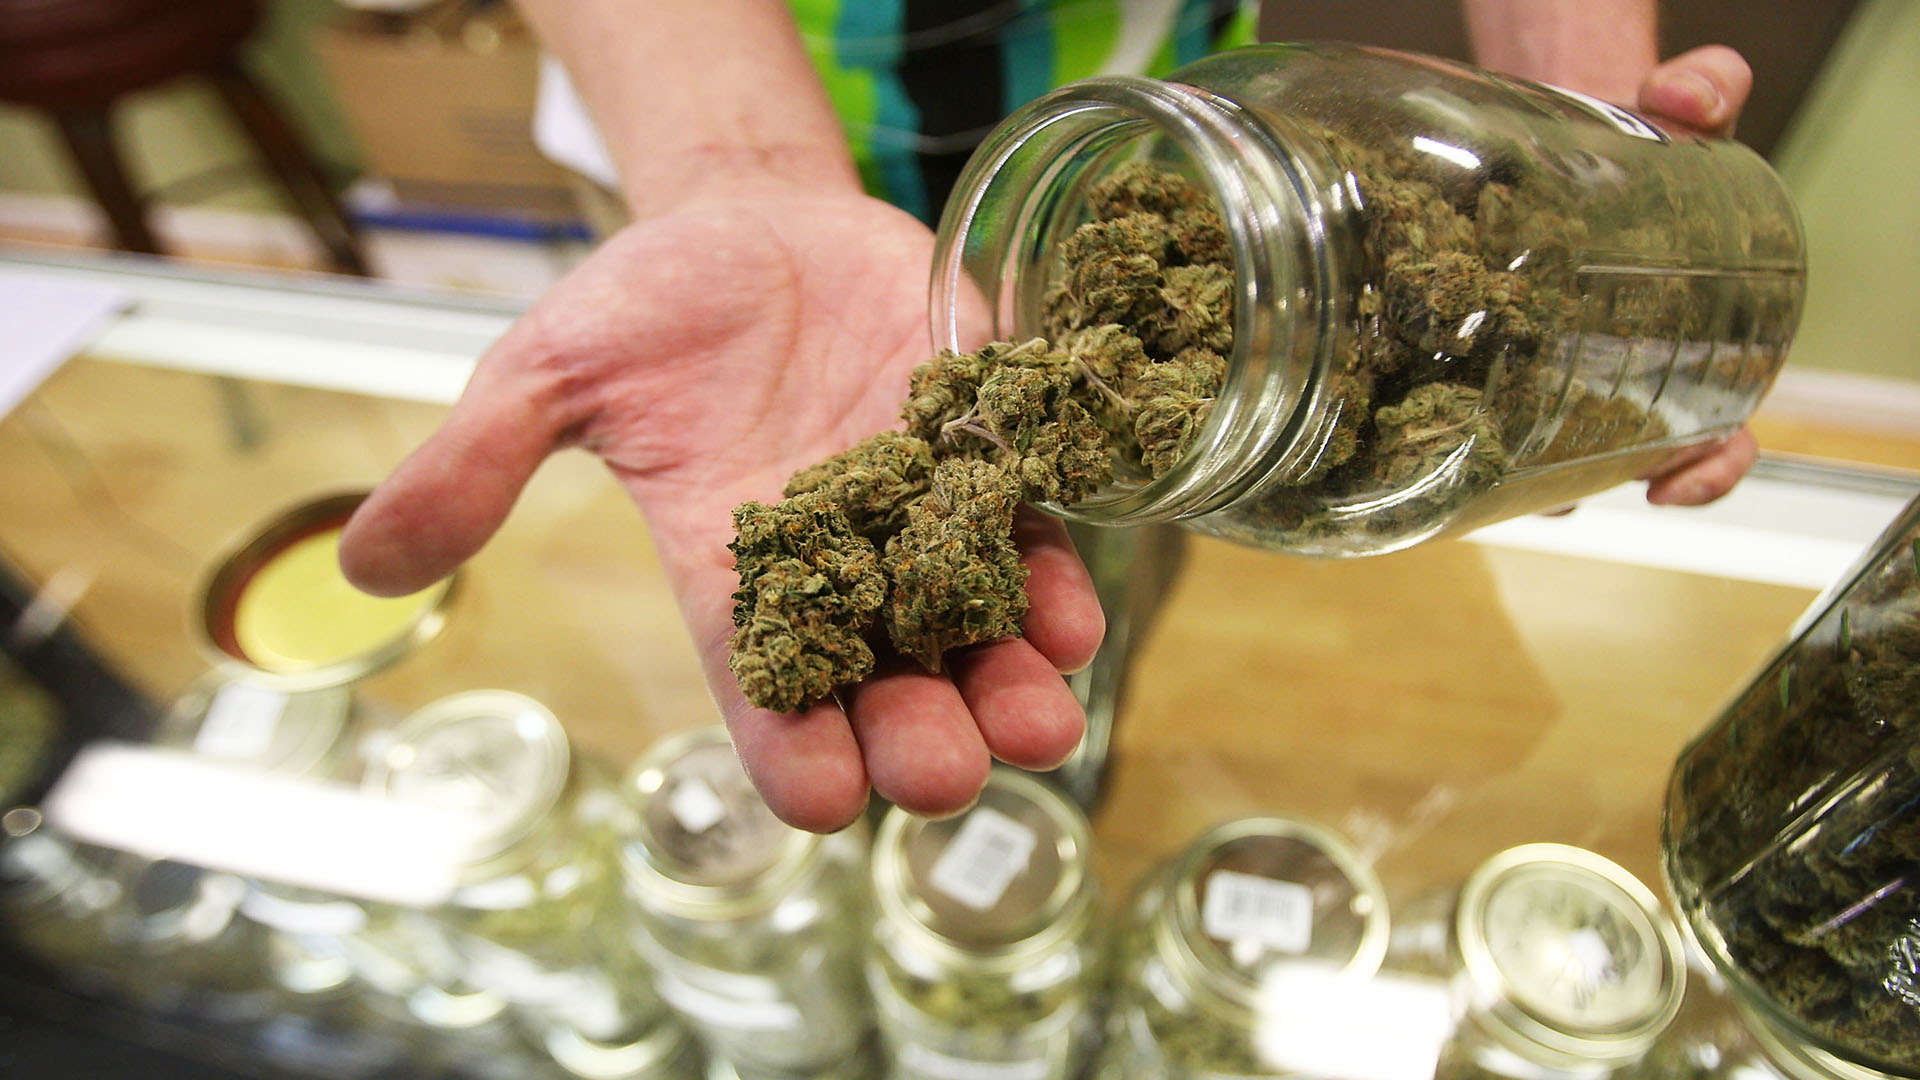 This undated file photo shows cannabis at a dispensary. (Getty Images)